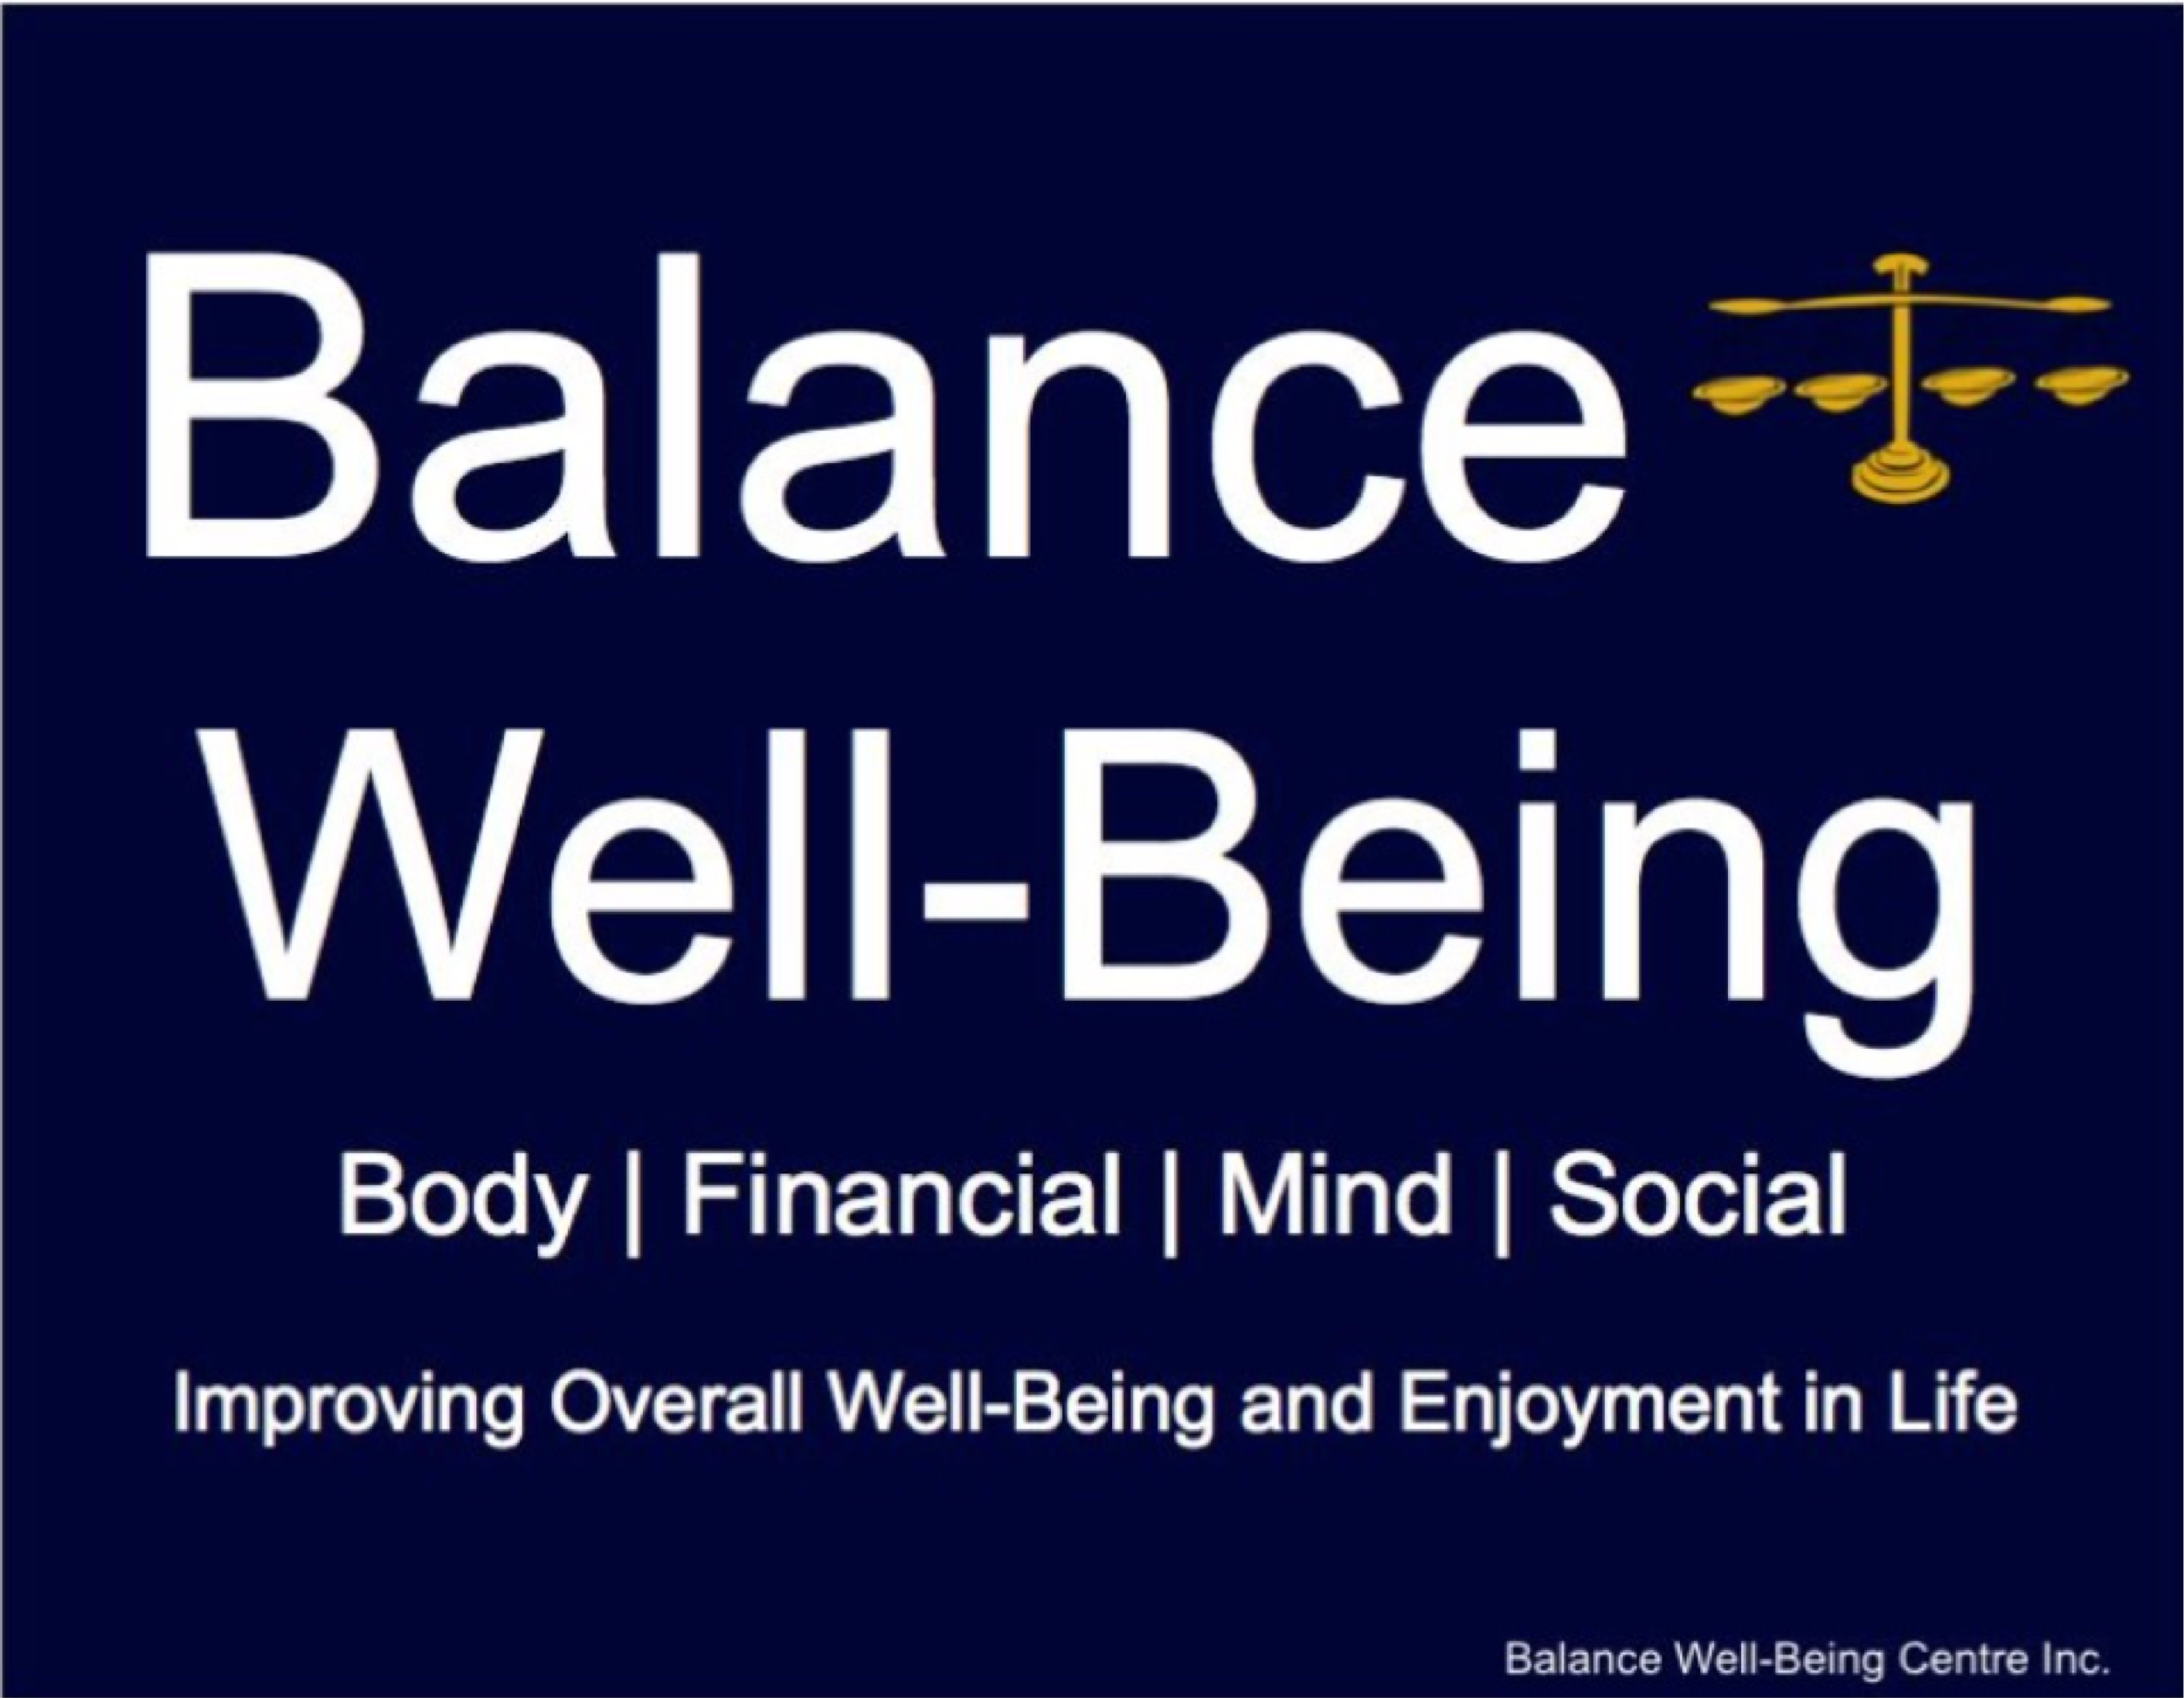 balancewellbeing.png